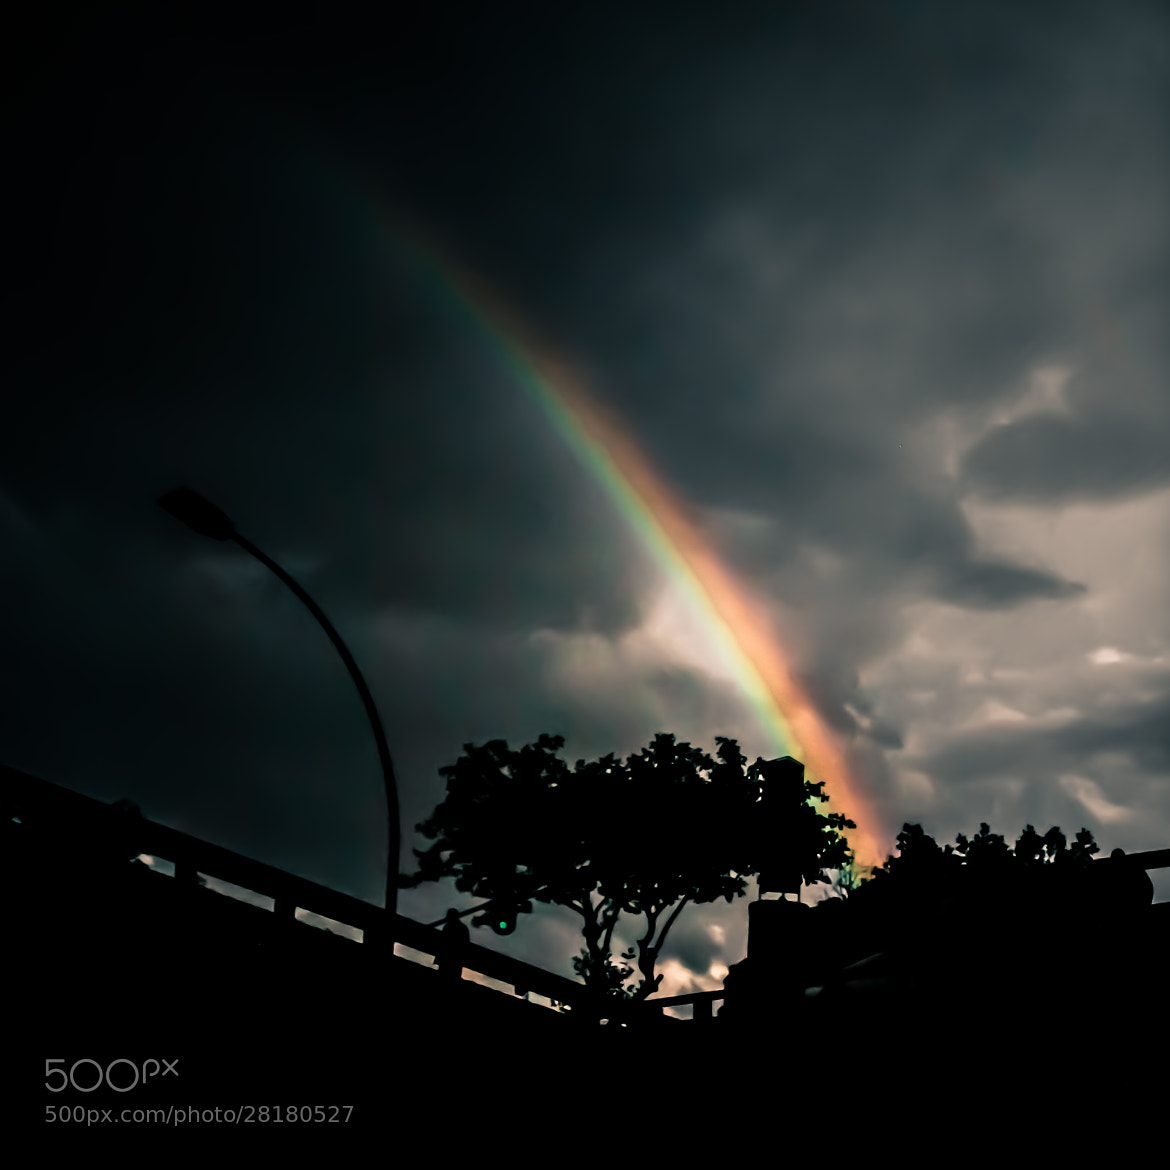 Photograph Rainbow in darkness by Augusto Dauster on 500px